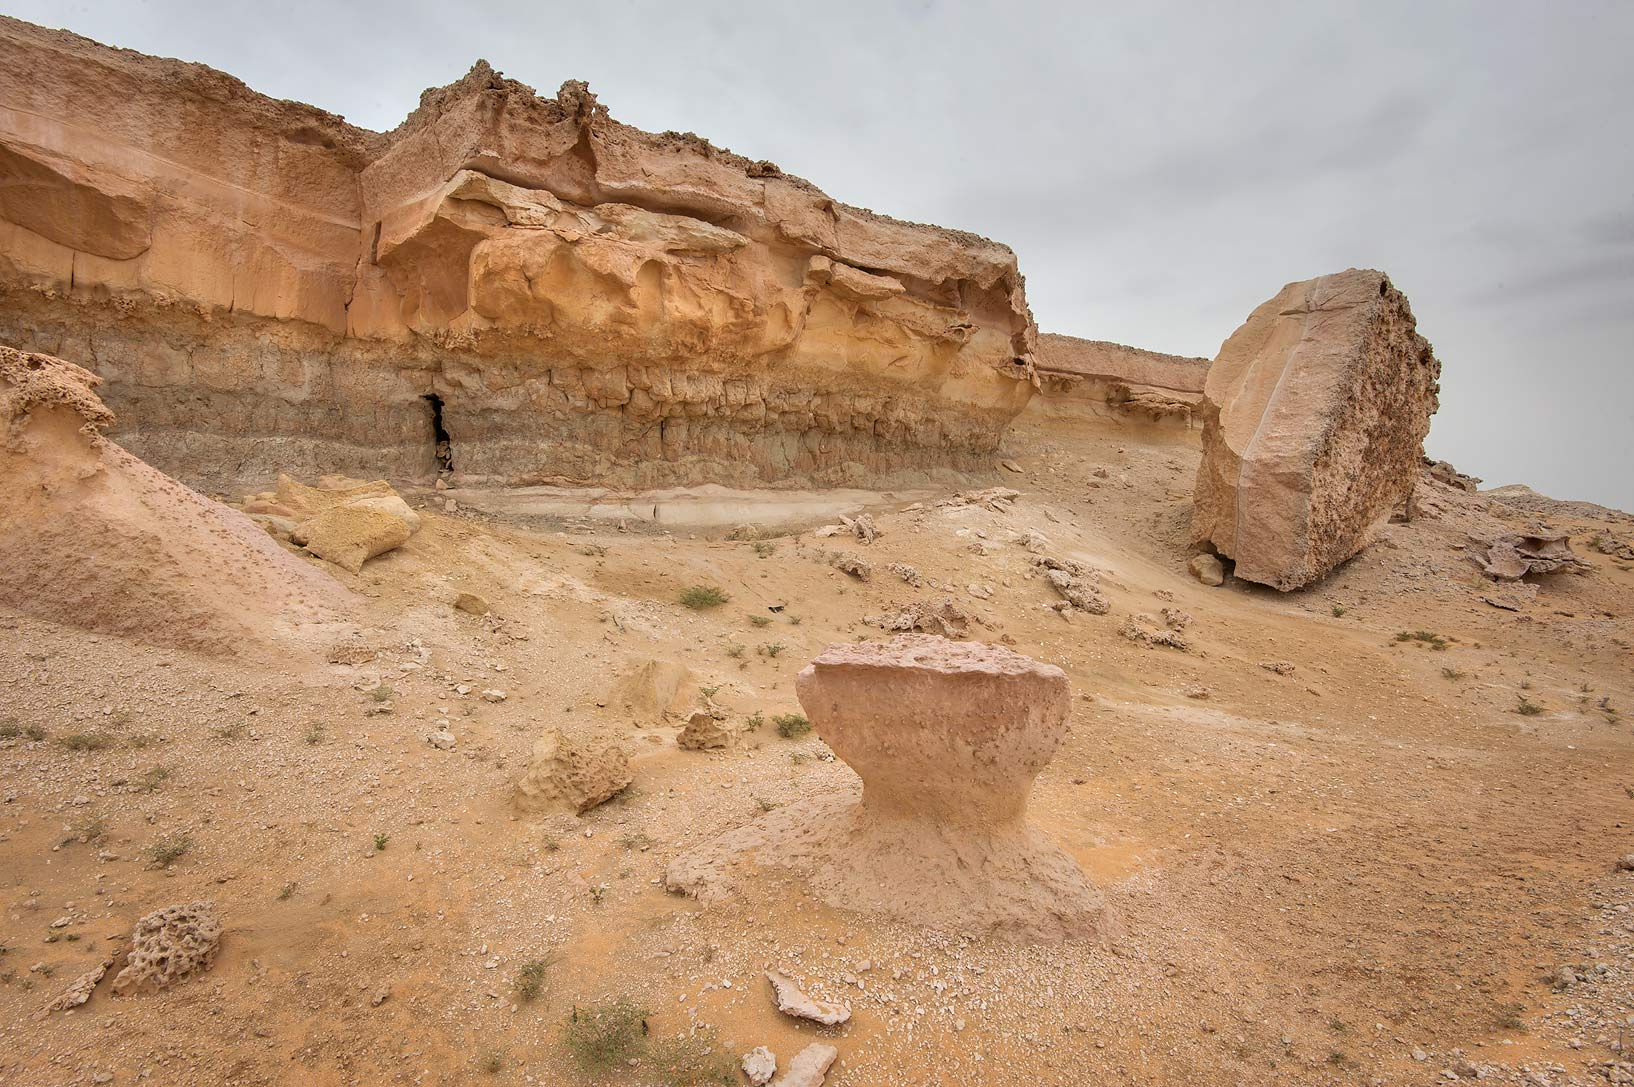 Erosion of the edge of limestone cliffs in...Reserve near Abu Samra. Southern Qatar